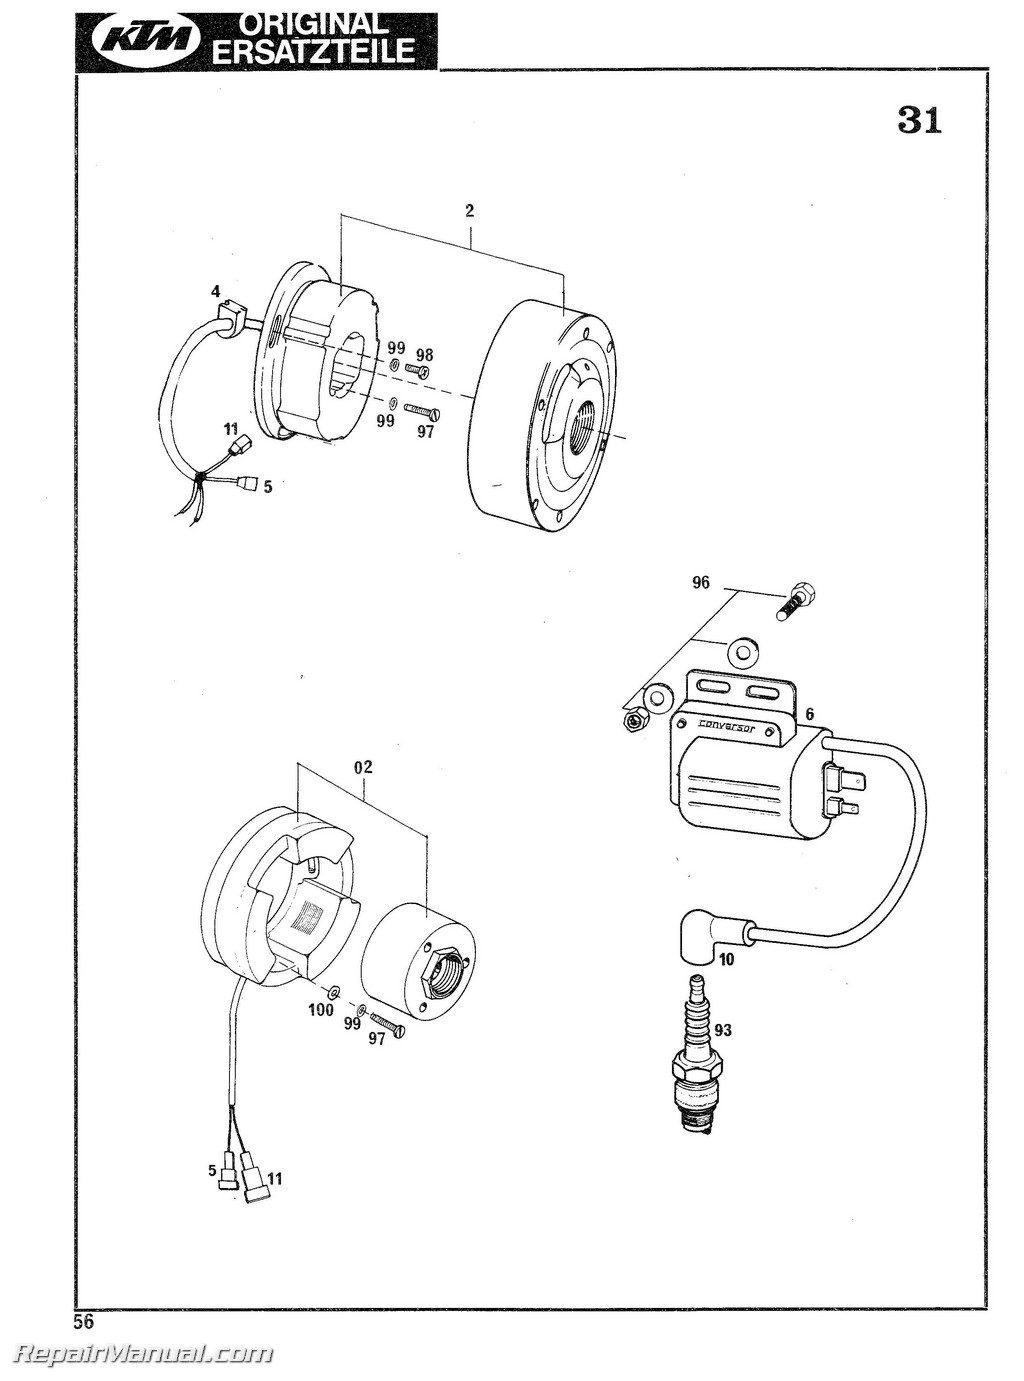 Ktm Parts Manual Wiring Library Engine Diagrams 1978 1979 125 175 240 250 340 400 Motorcycle Spare